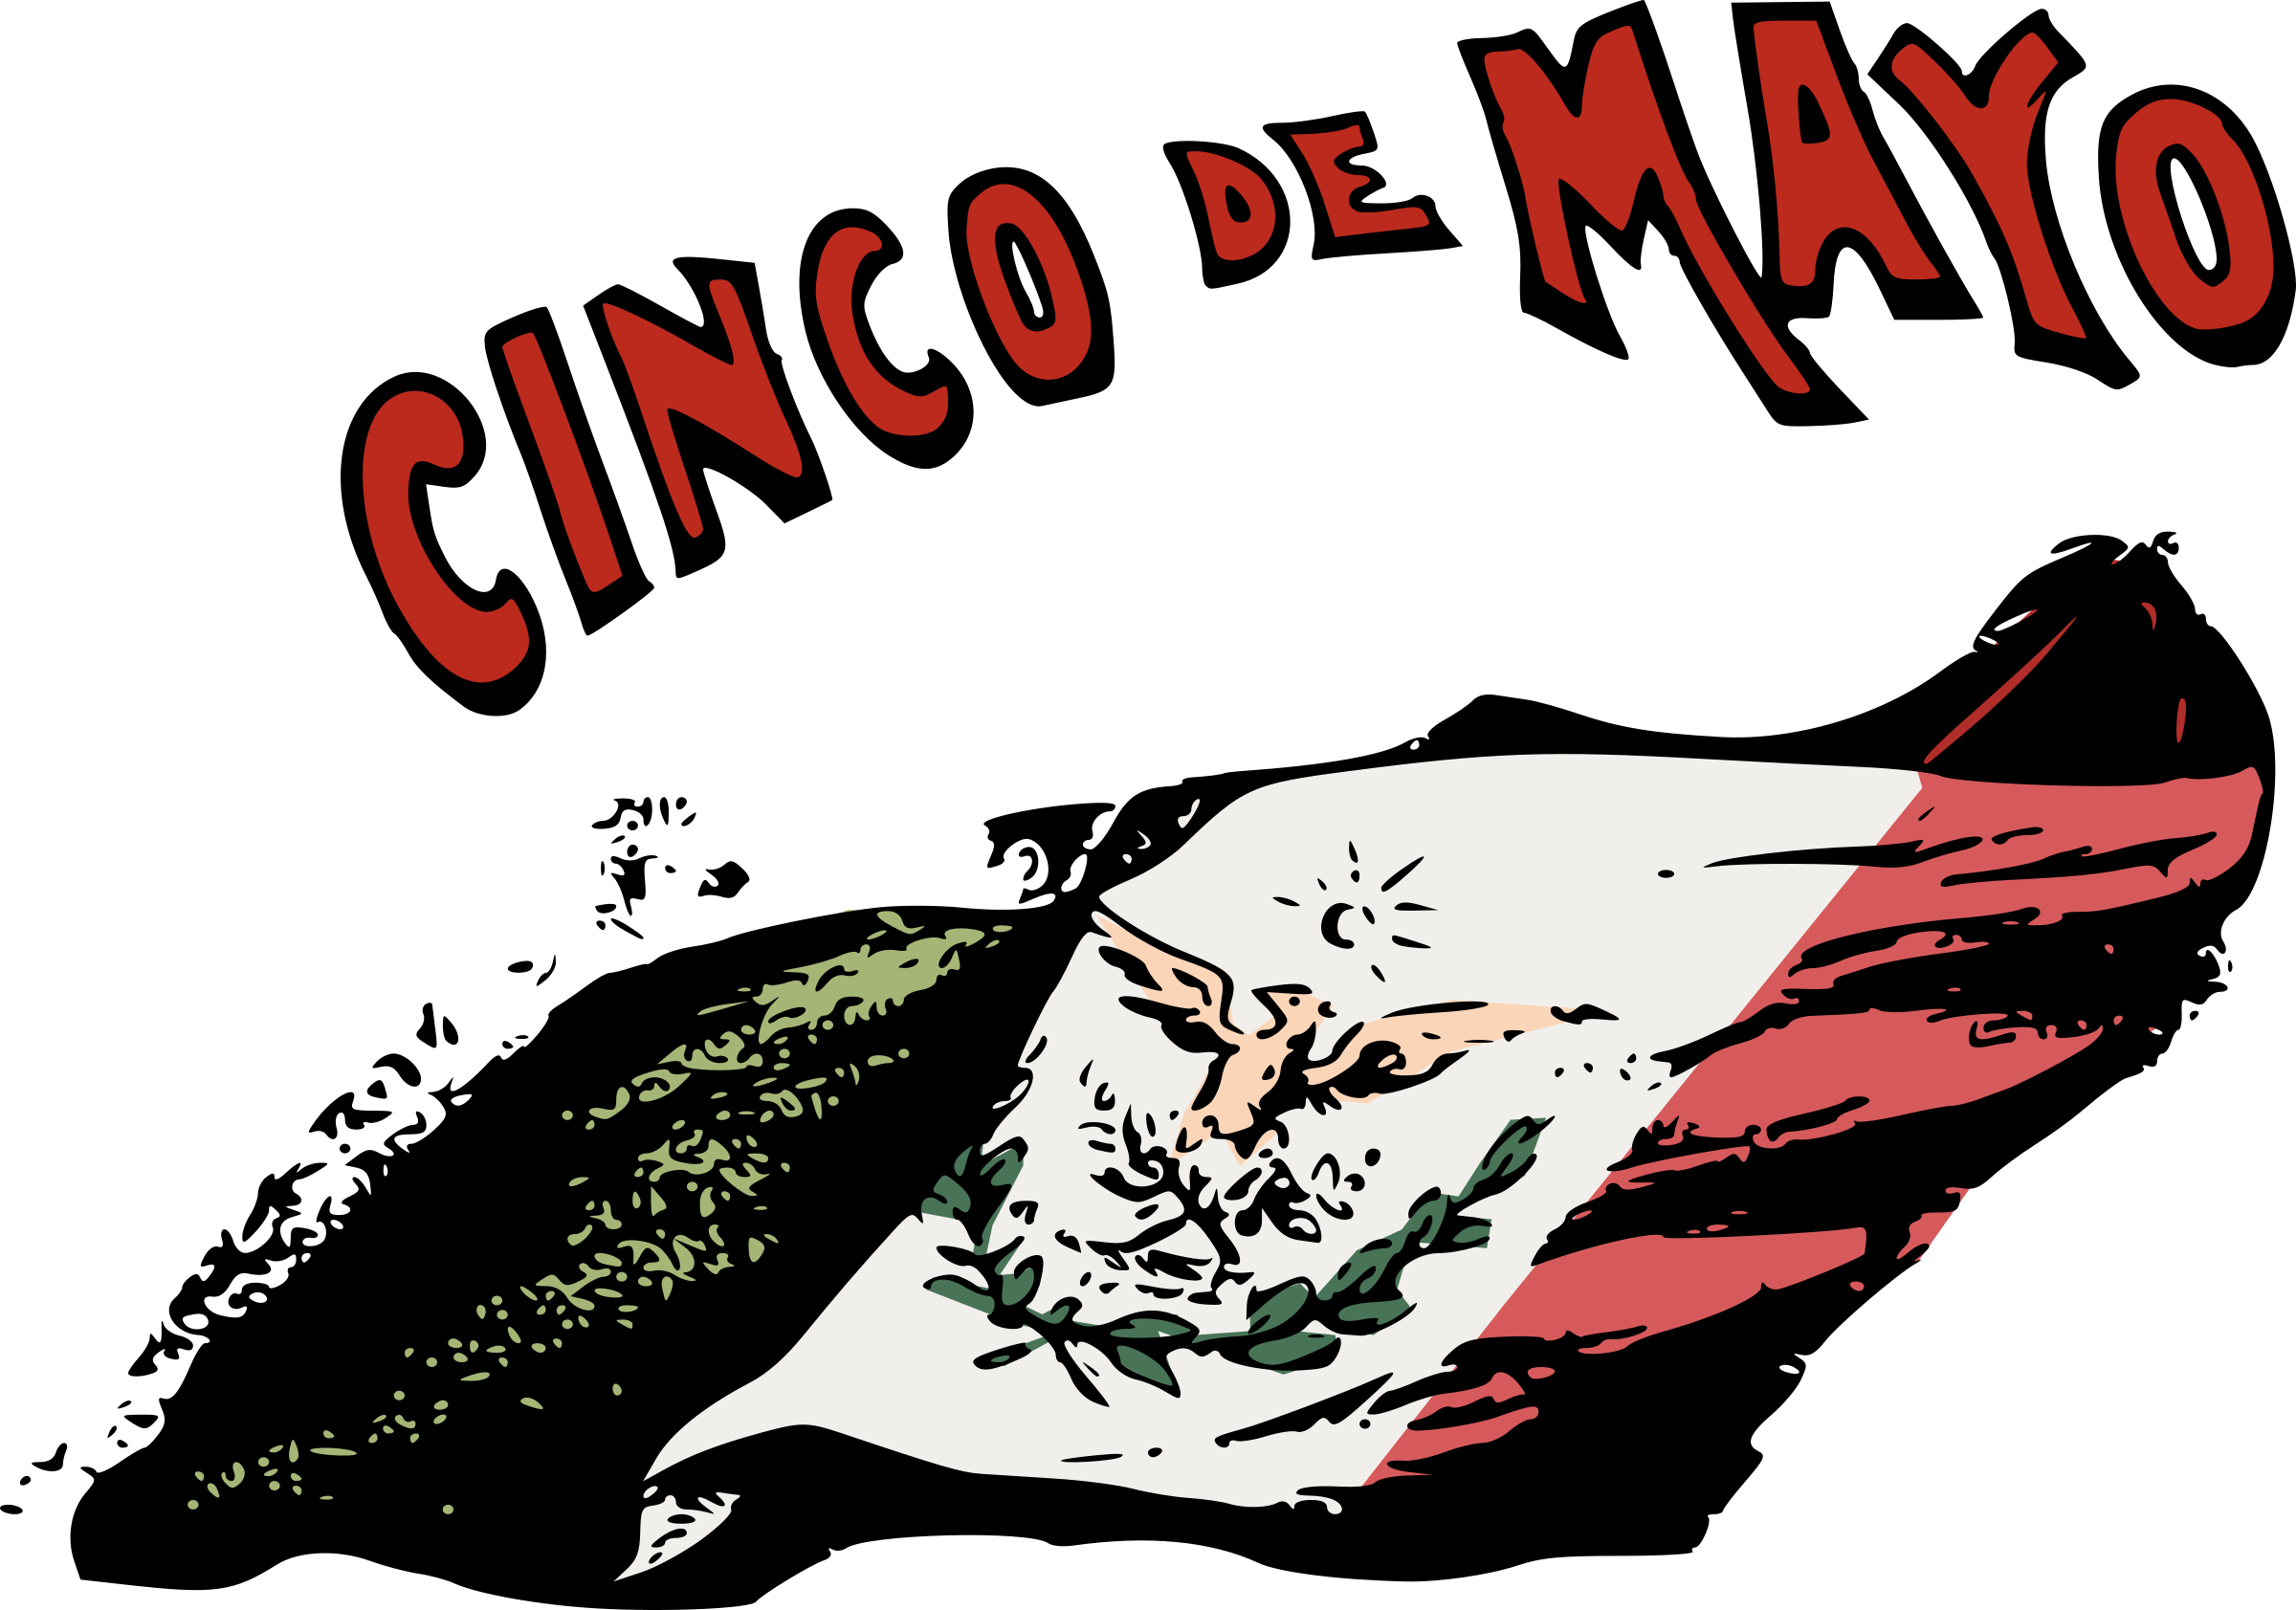 Retro Cinco de Mayo by j4p4n